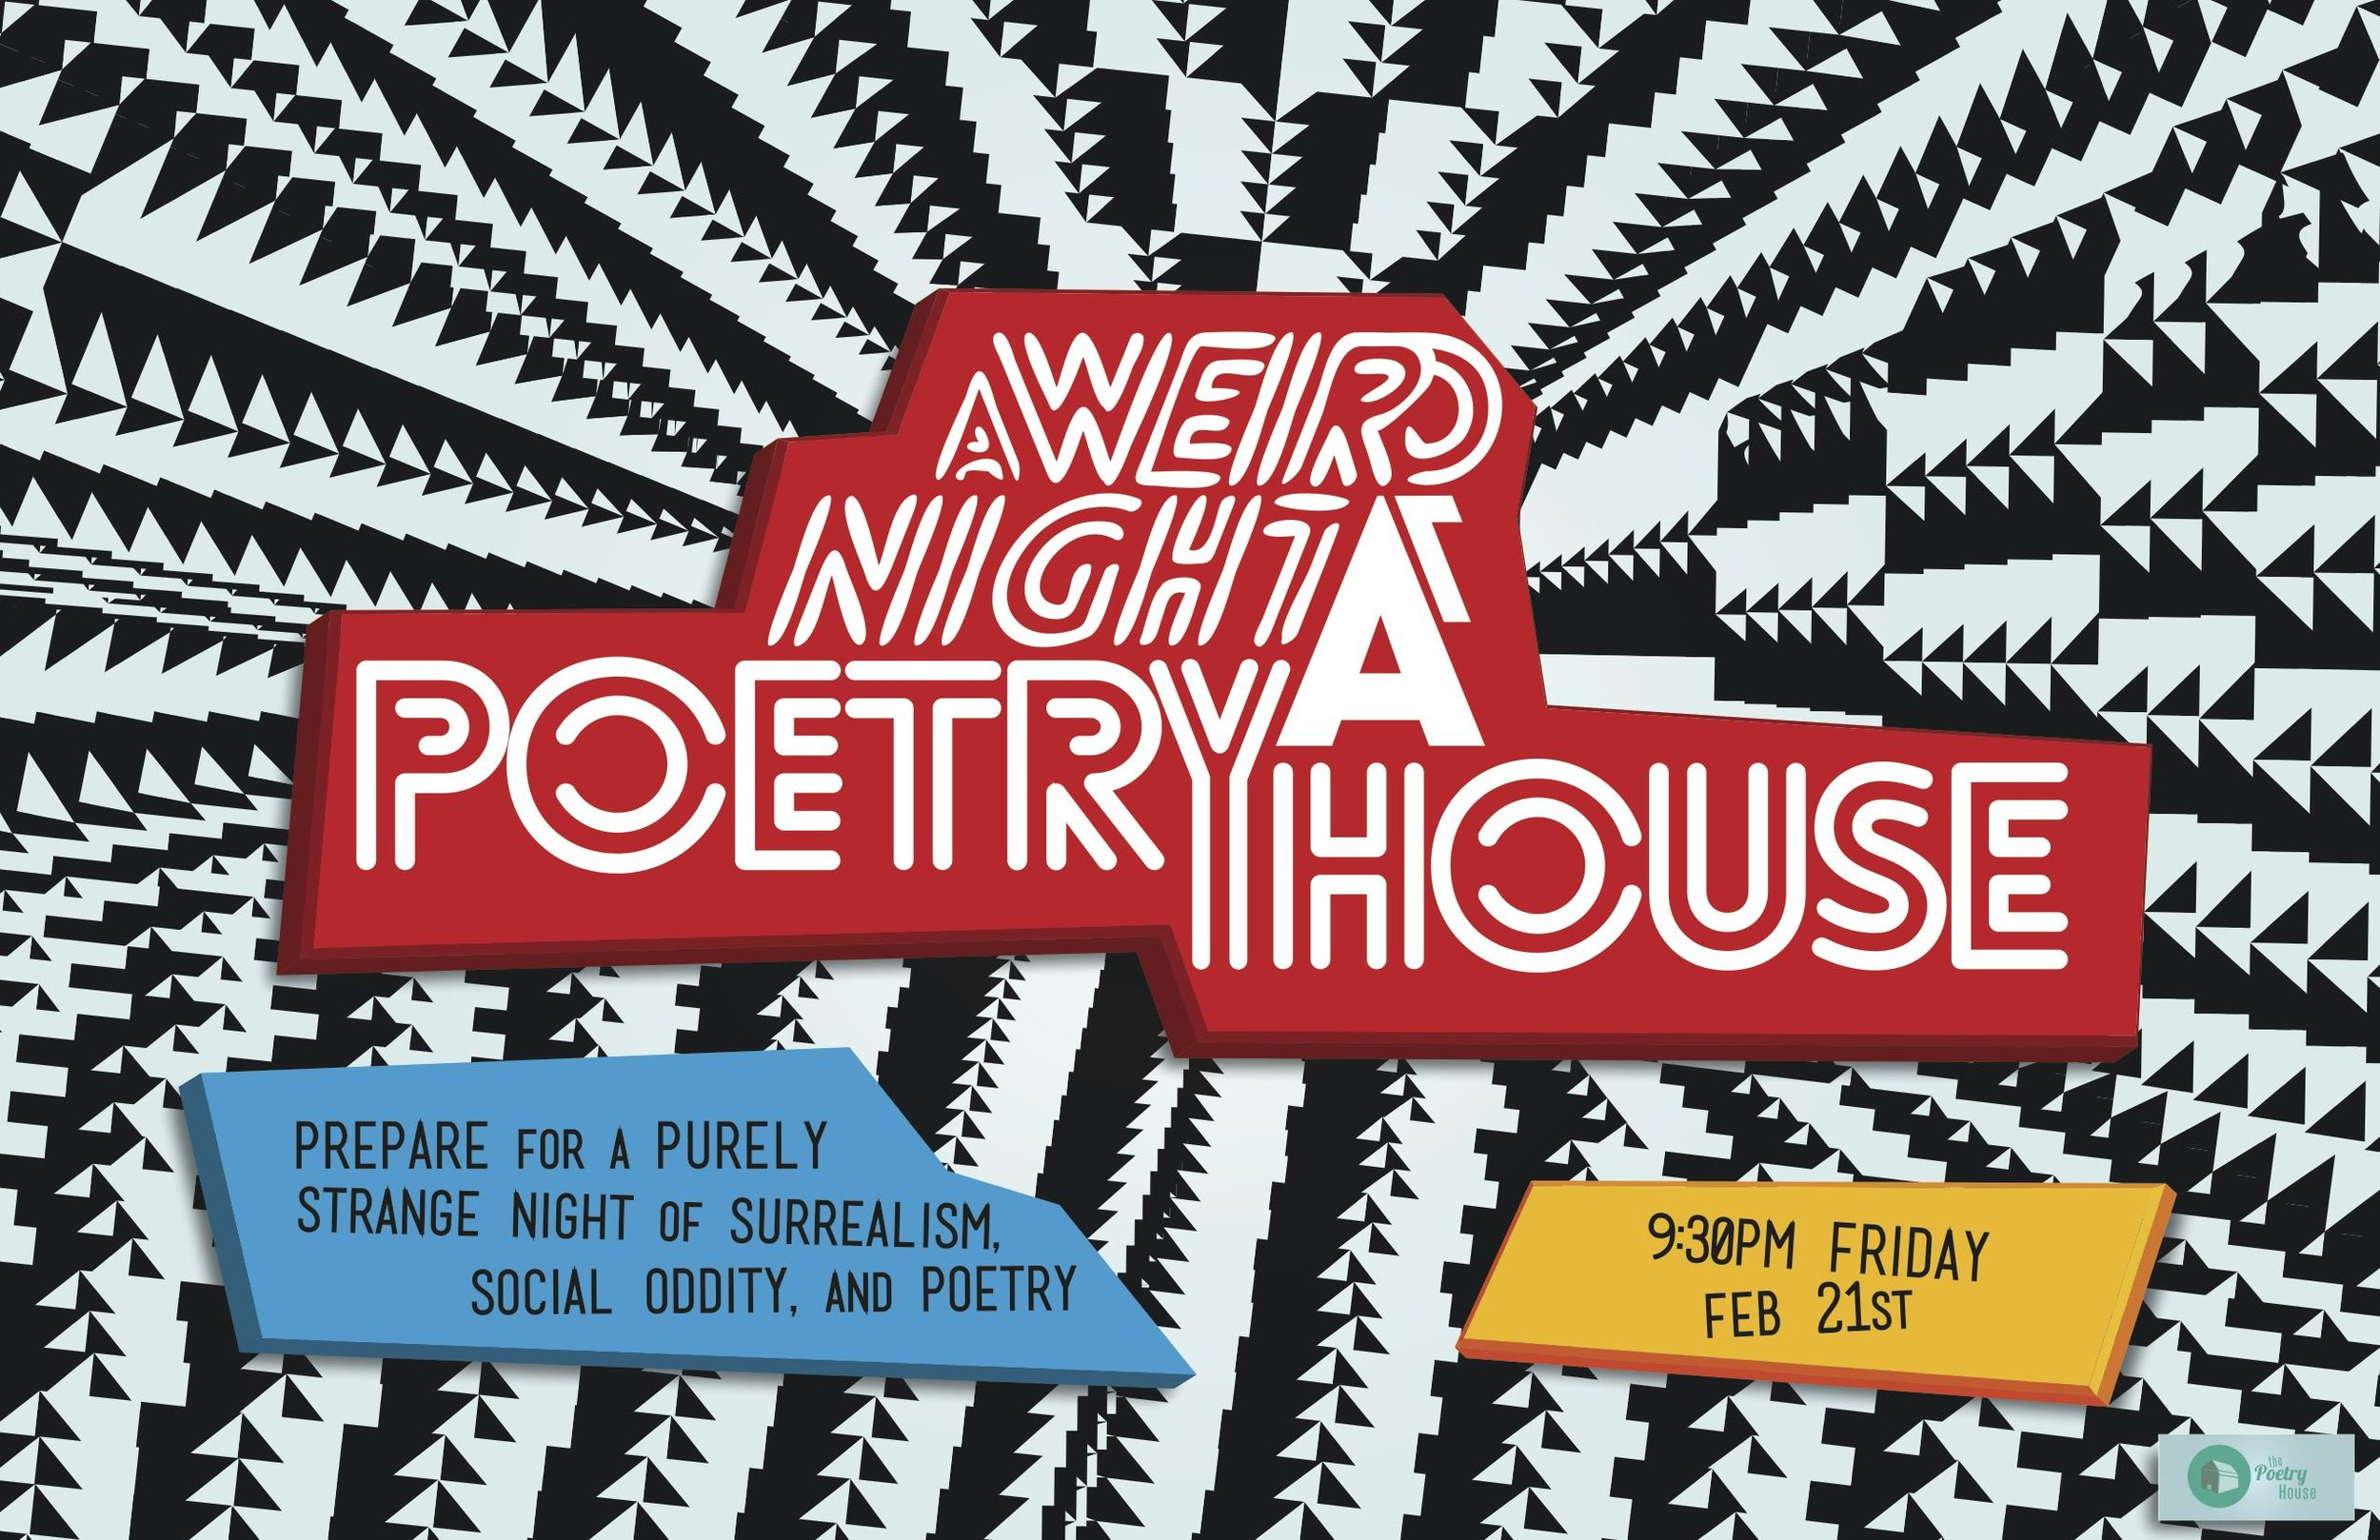 'A Weird Night at Poetry House' Event Poster